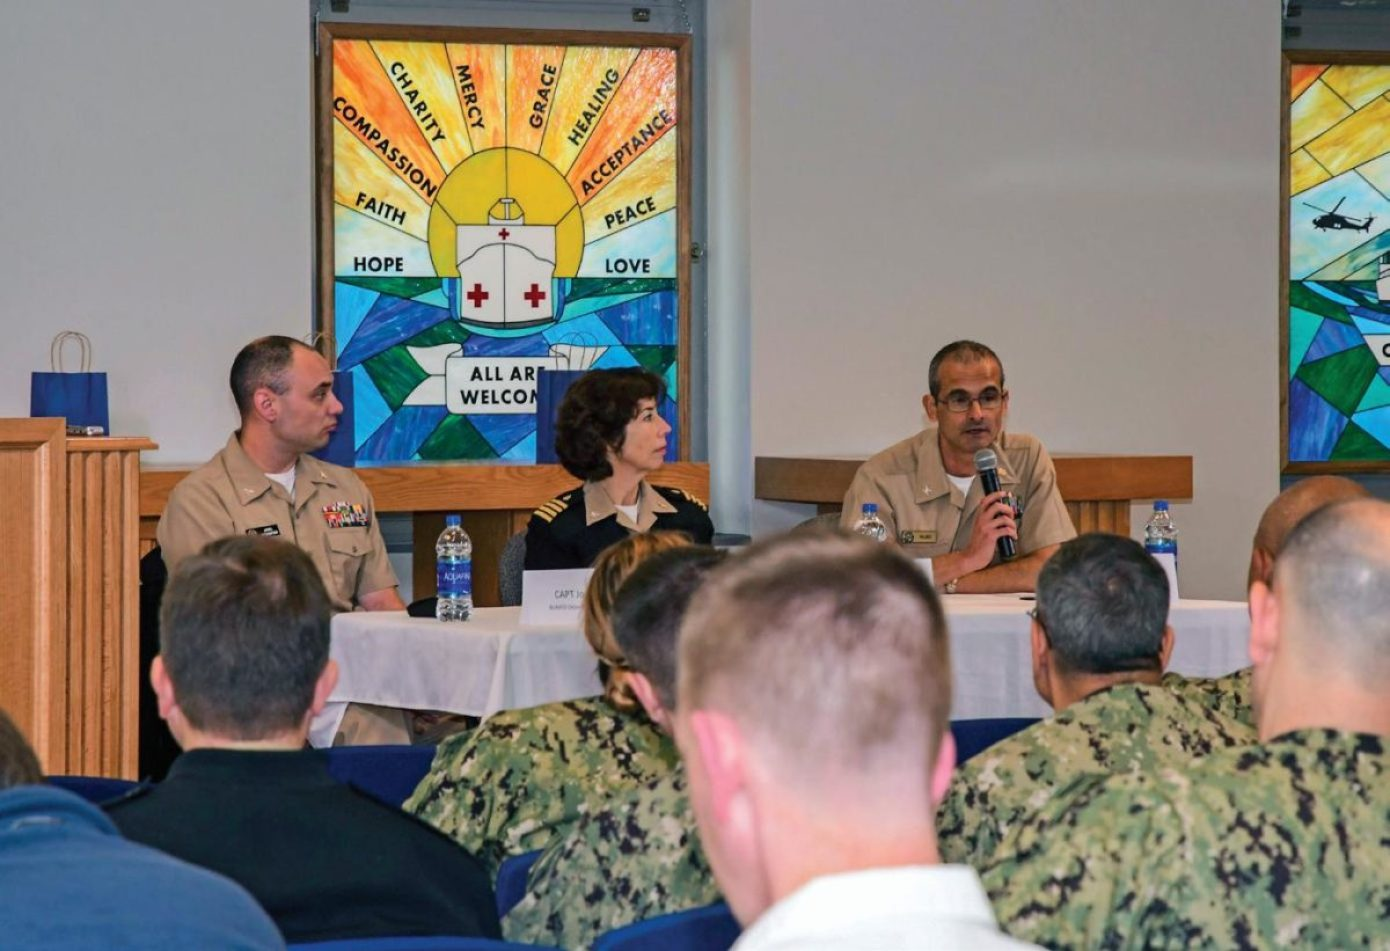 Naval Medical Center Portsmouth (NMCP) hosted the Future of Military Medicine panel on Nov. 14, 2019, to discuss the MTFs' transition to DHA. The panel participants were, from left to right: Capt. Joel Schofer, deputy chief of the Medical Corps at the Navy Bureau of Medicine and Surgery (BUMED); Capt. Lisa Mulligan, NMCP's commanding officer; and Capt. Guido Valdes, Navy Medicine East's deputy commander.